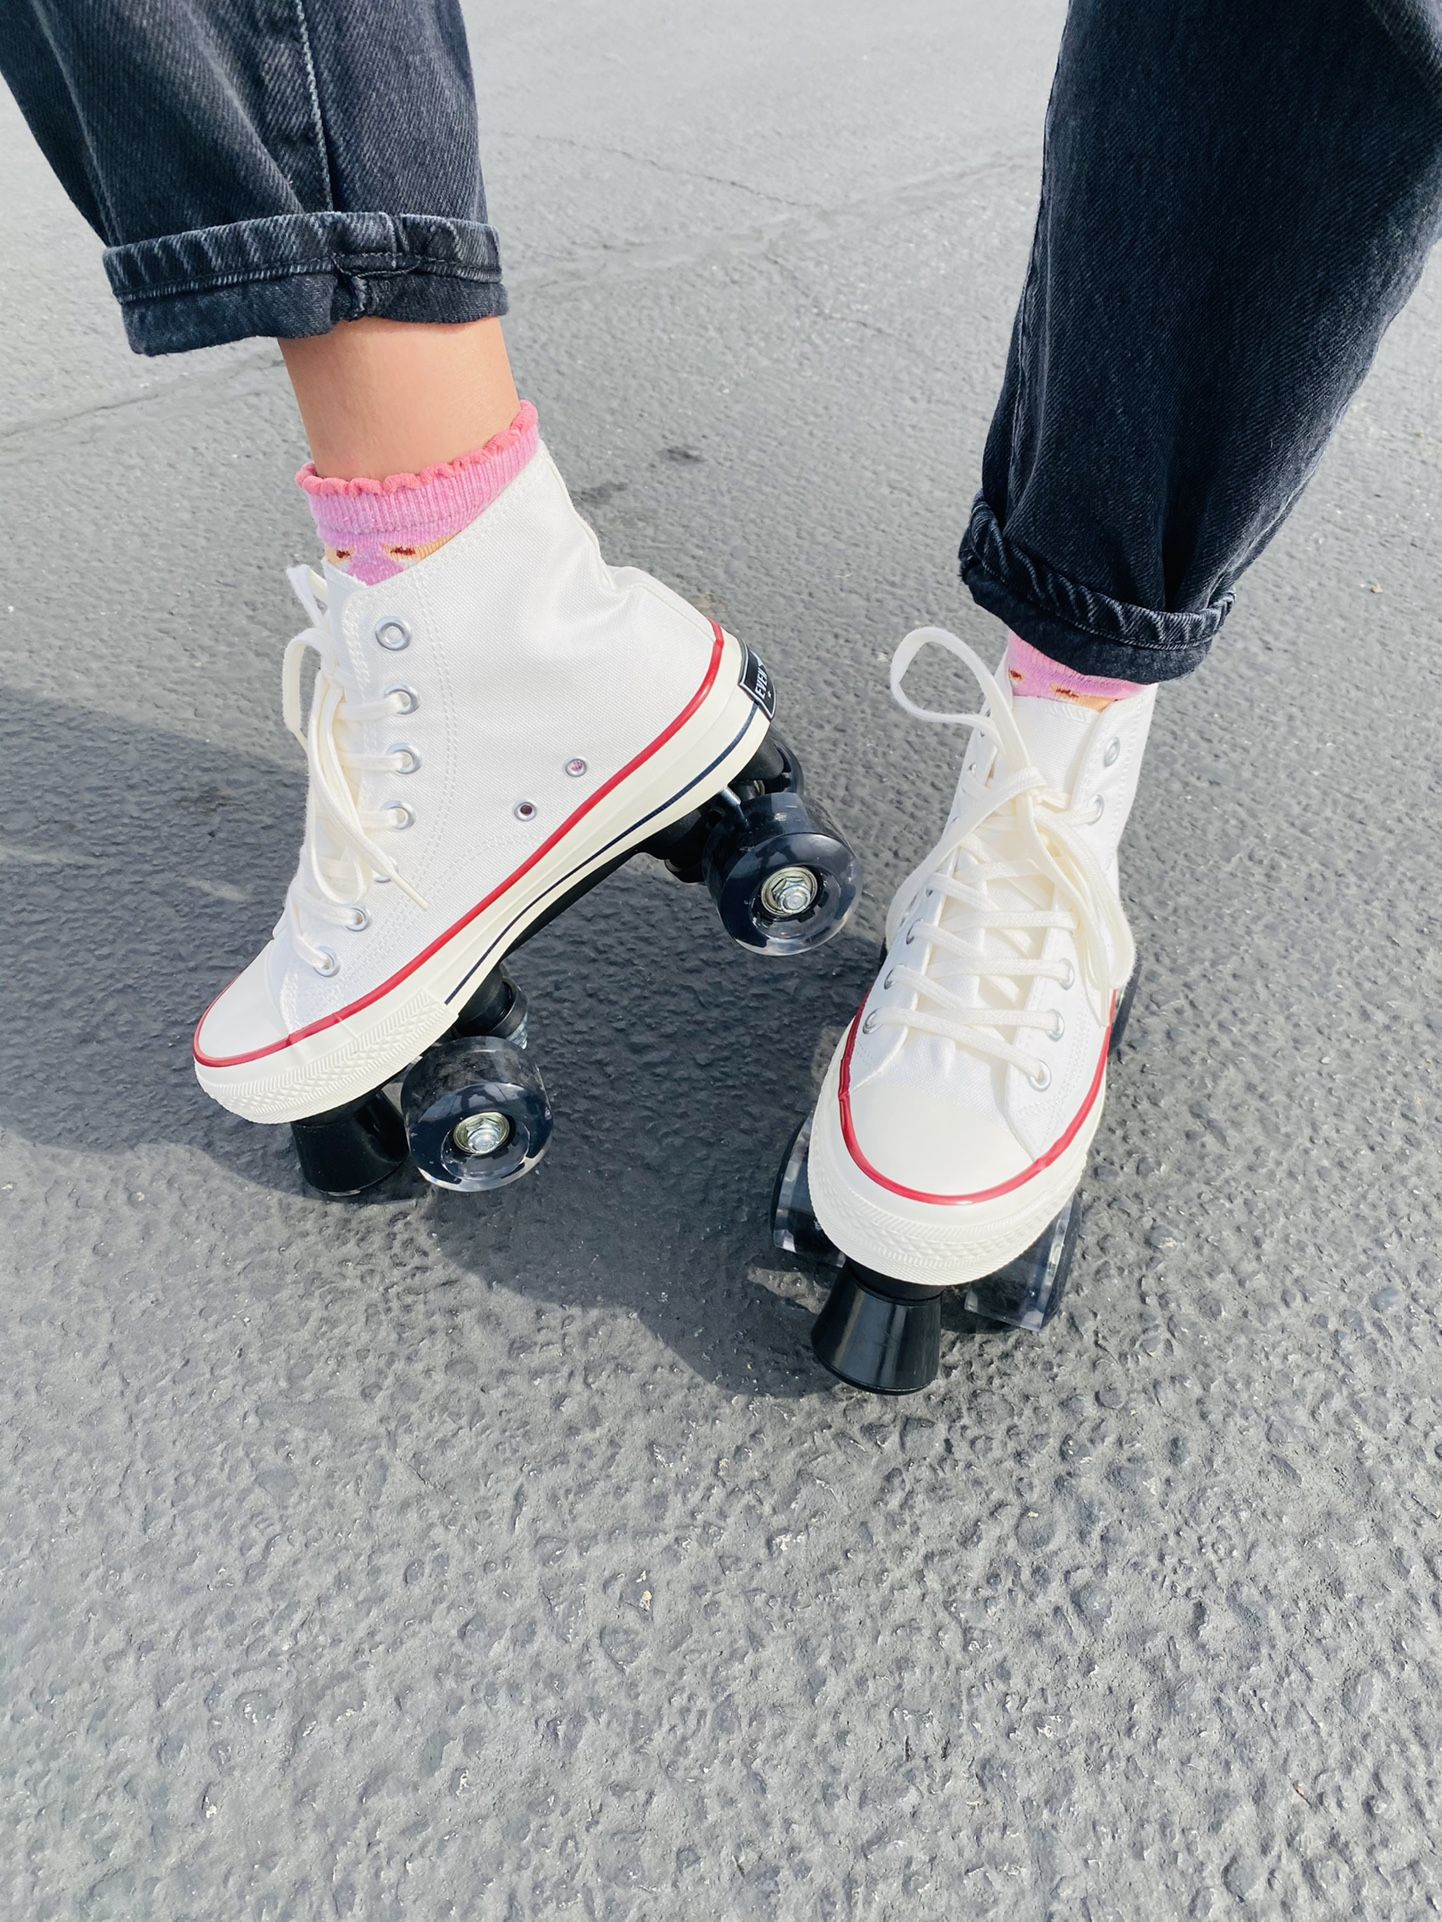 Brand New Roller Skates In Women Size 6,7,8,9,10 & 11 Converse Style Quad Skates Out Door Sports